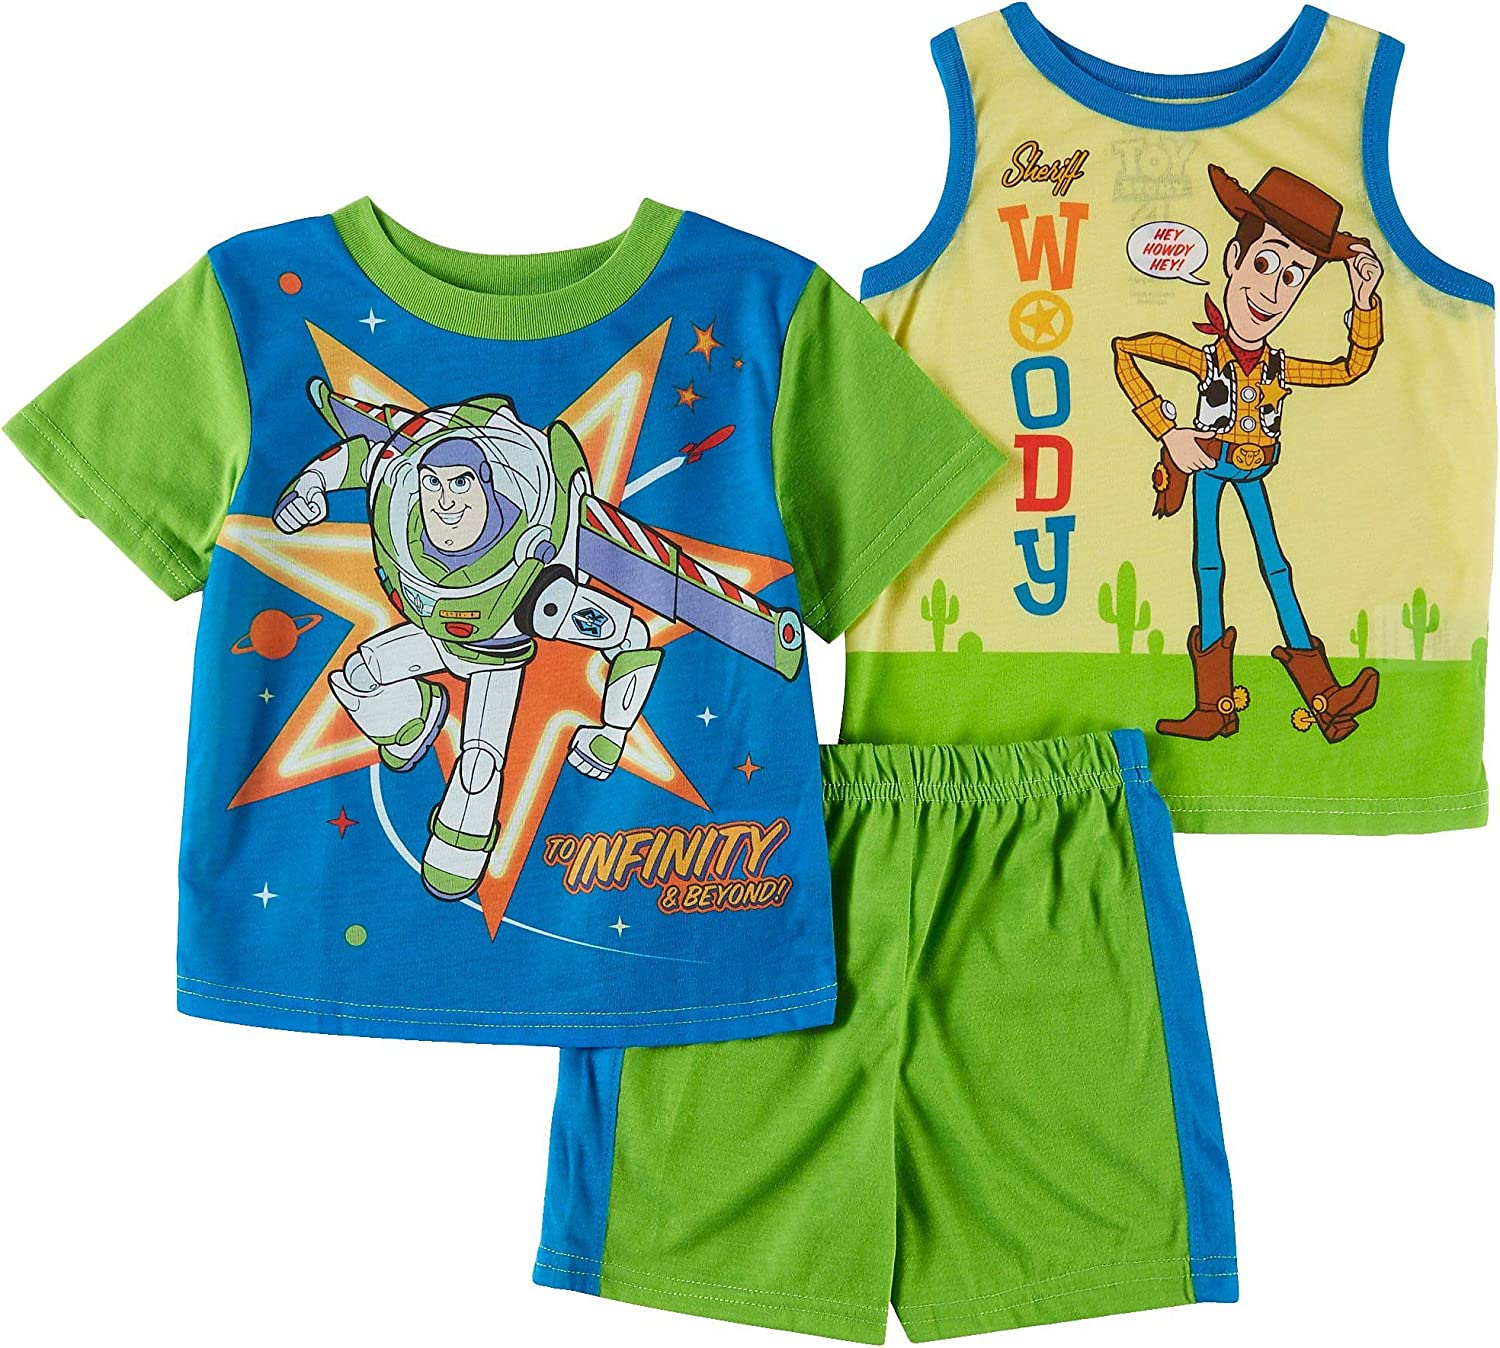 New Toy Story Buzz Lightyear Boys 3pc cotton shirt tank top 3//4 pants outift set